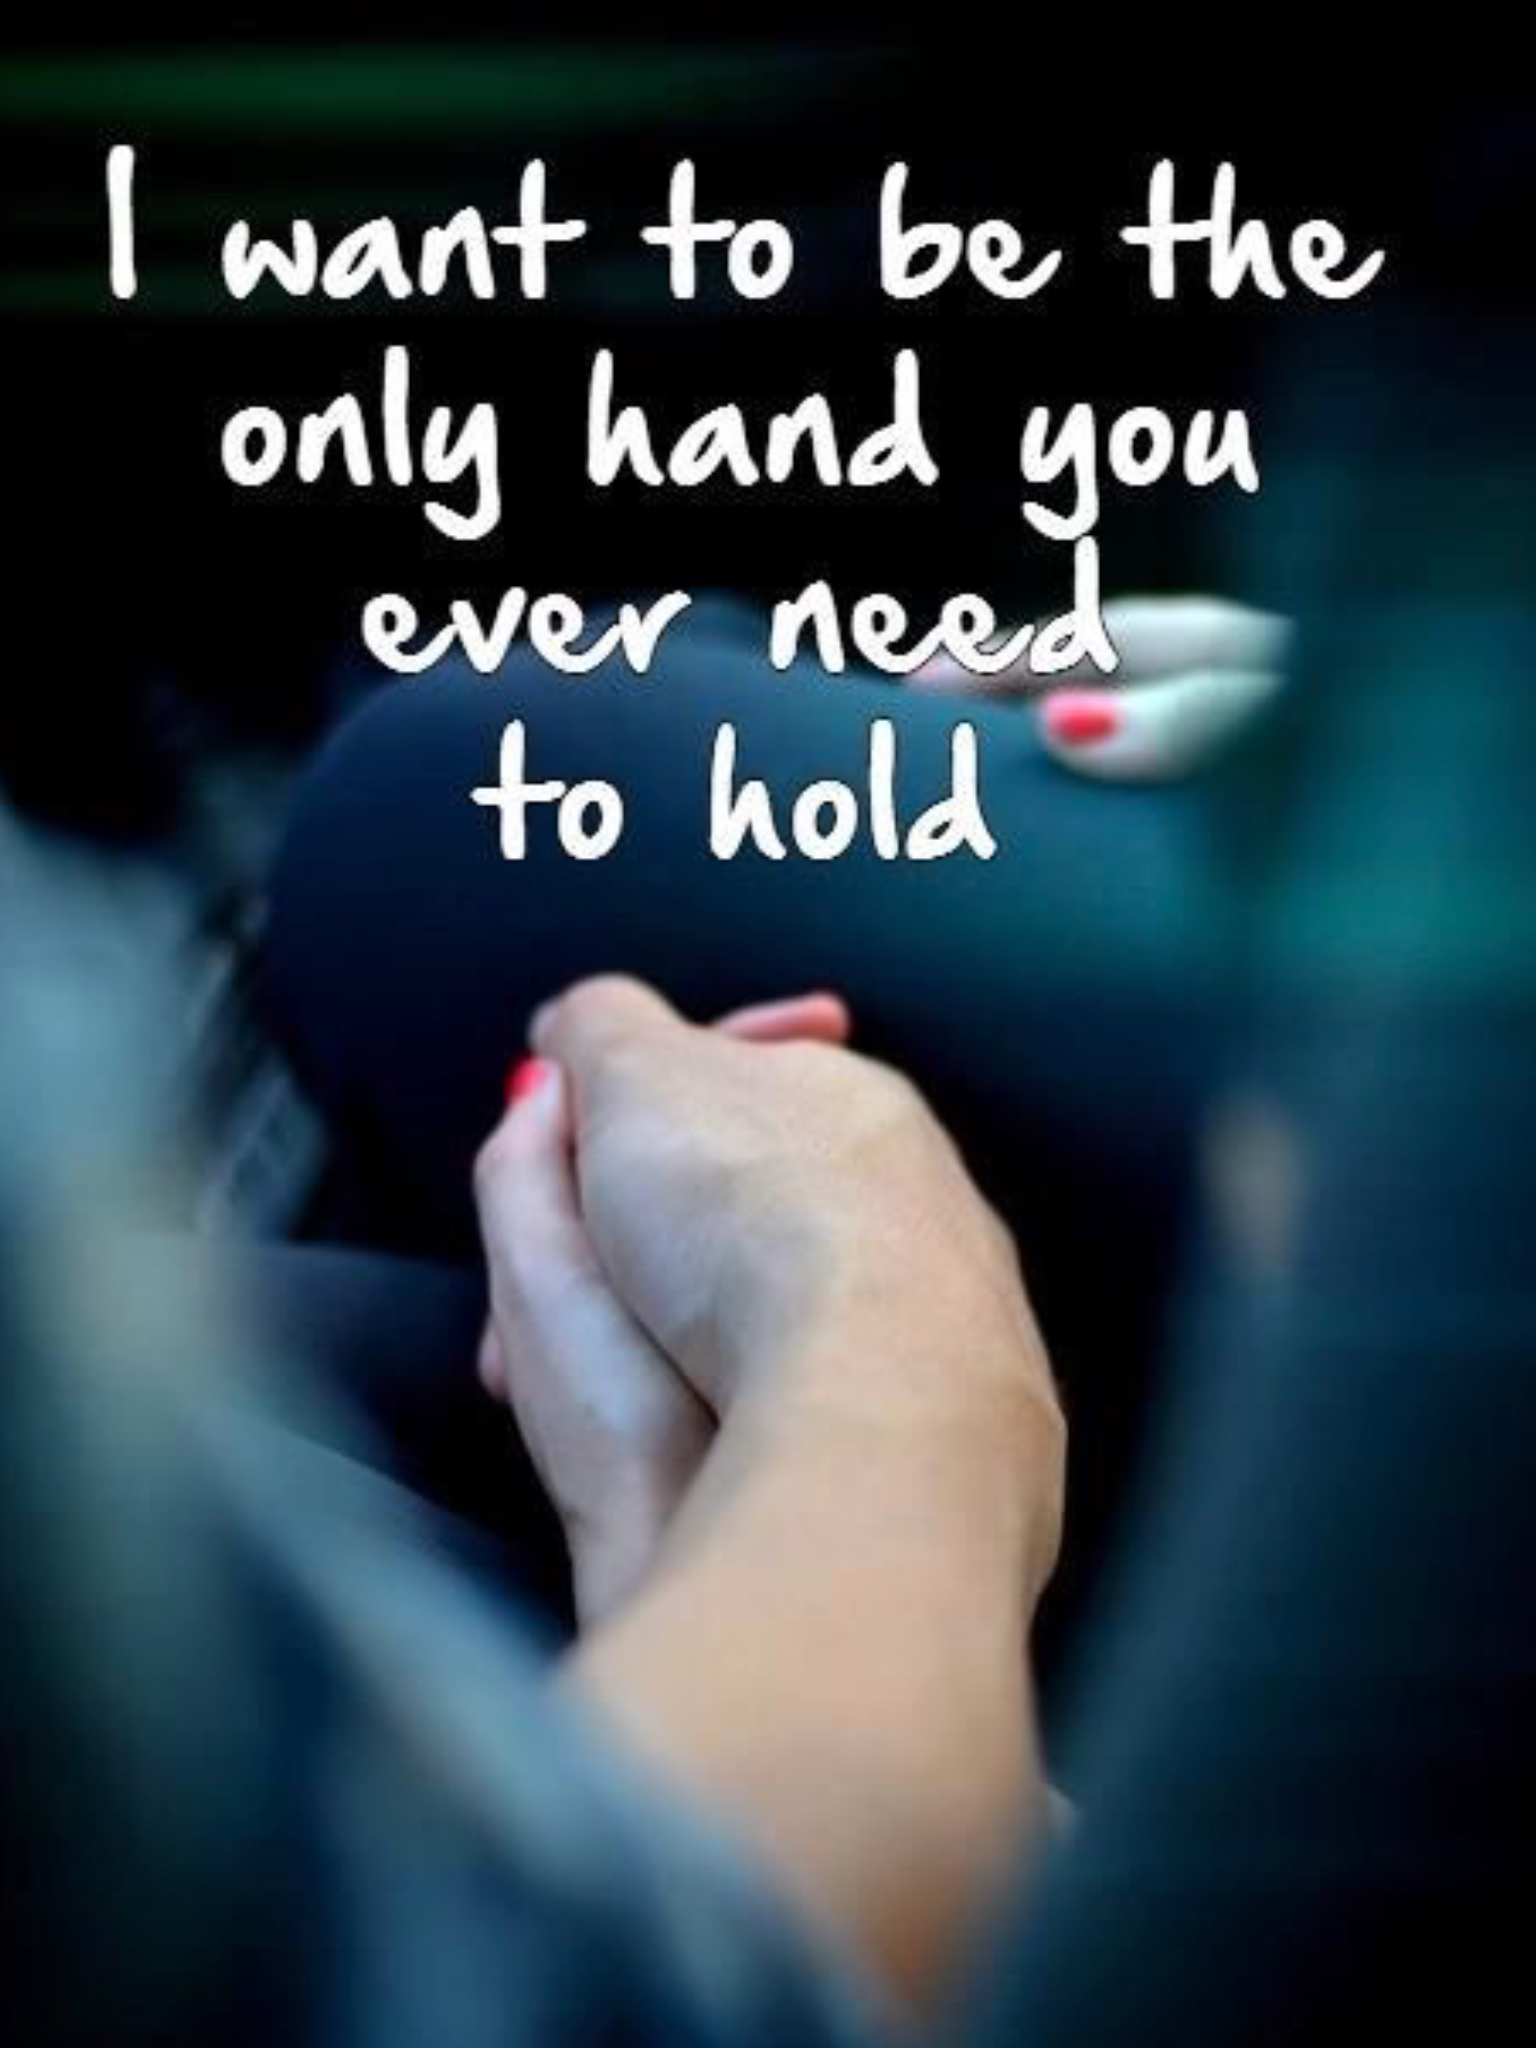 Love Romantic Quotes Hello Gjofhh  The Coffee Life  Pinterest  Relationships Godly